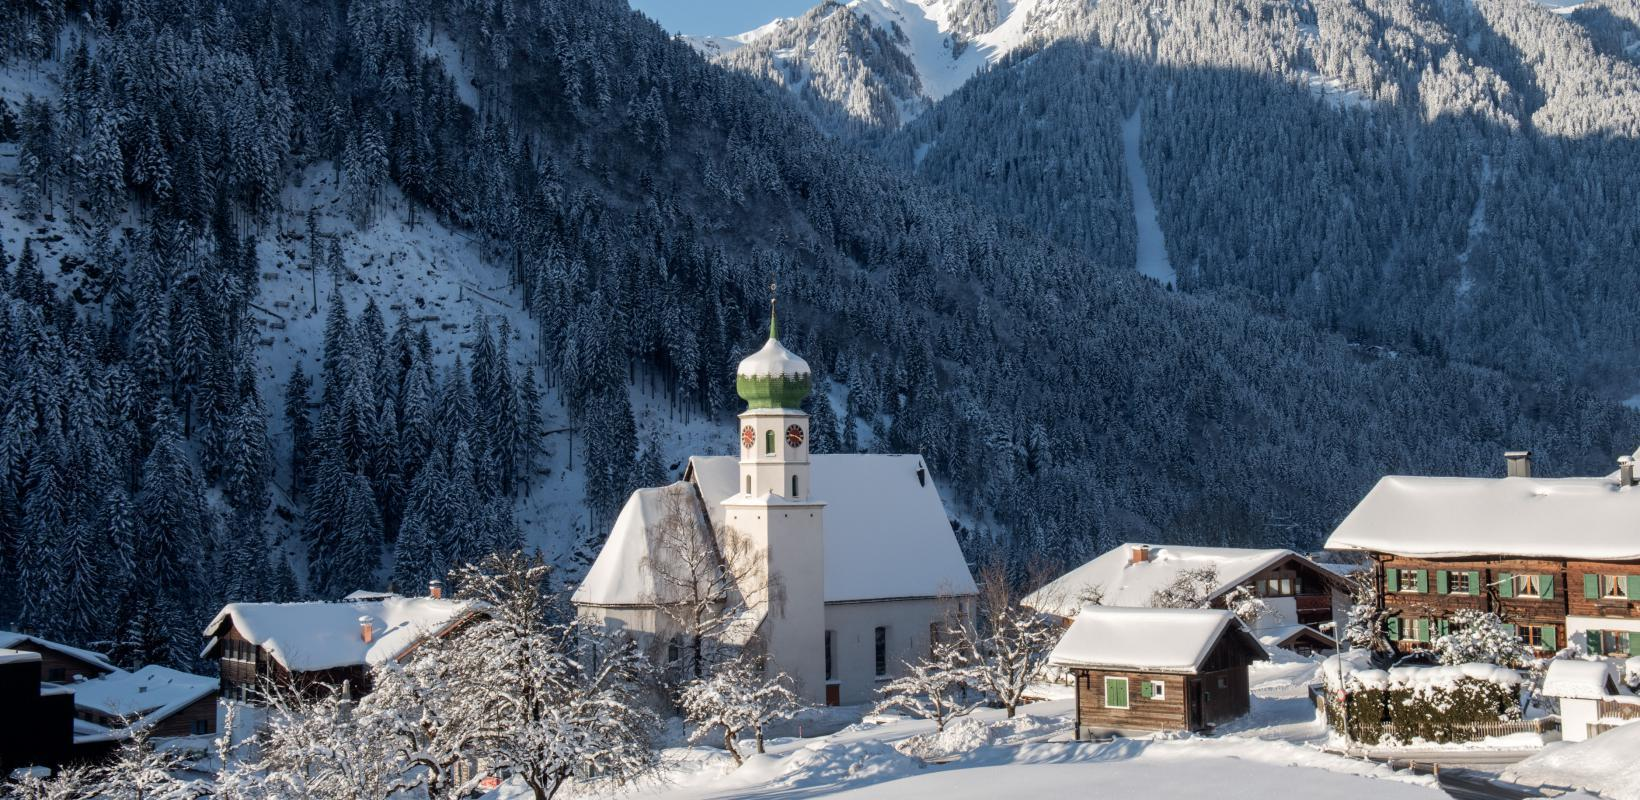 St. Gallenkirch im Winter